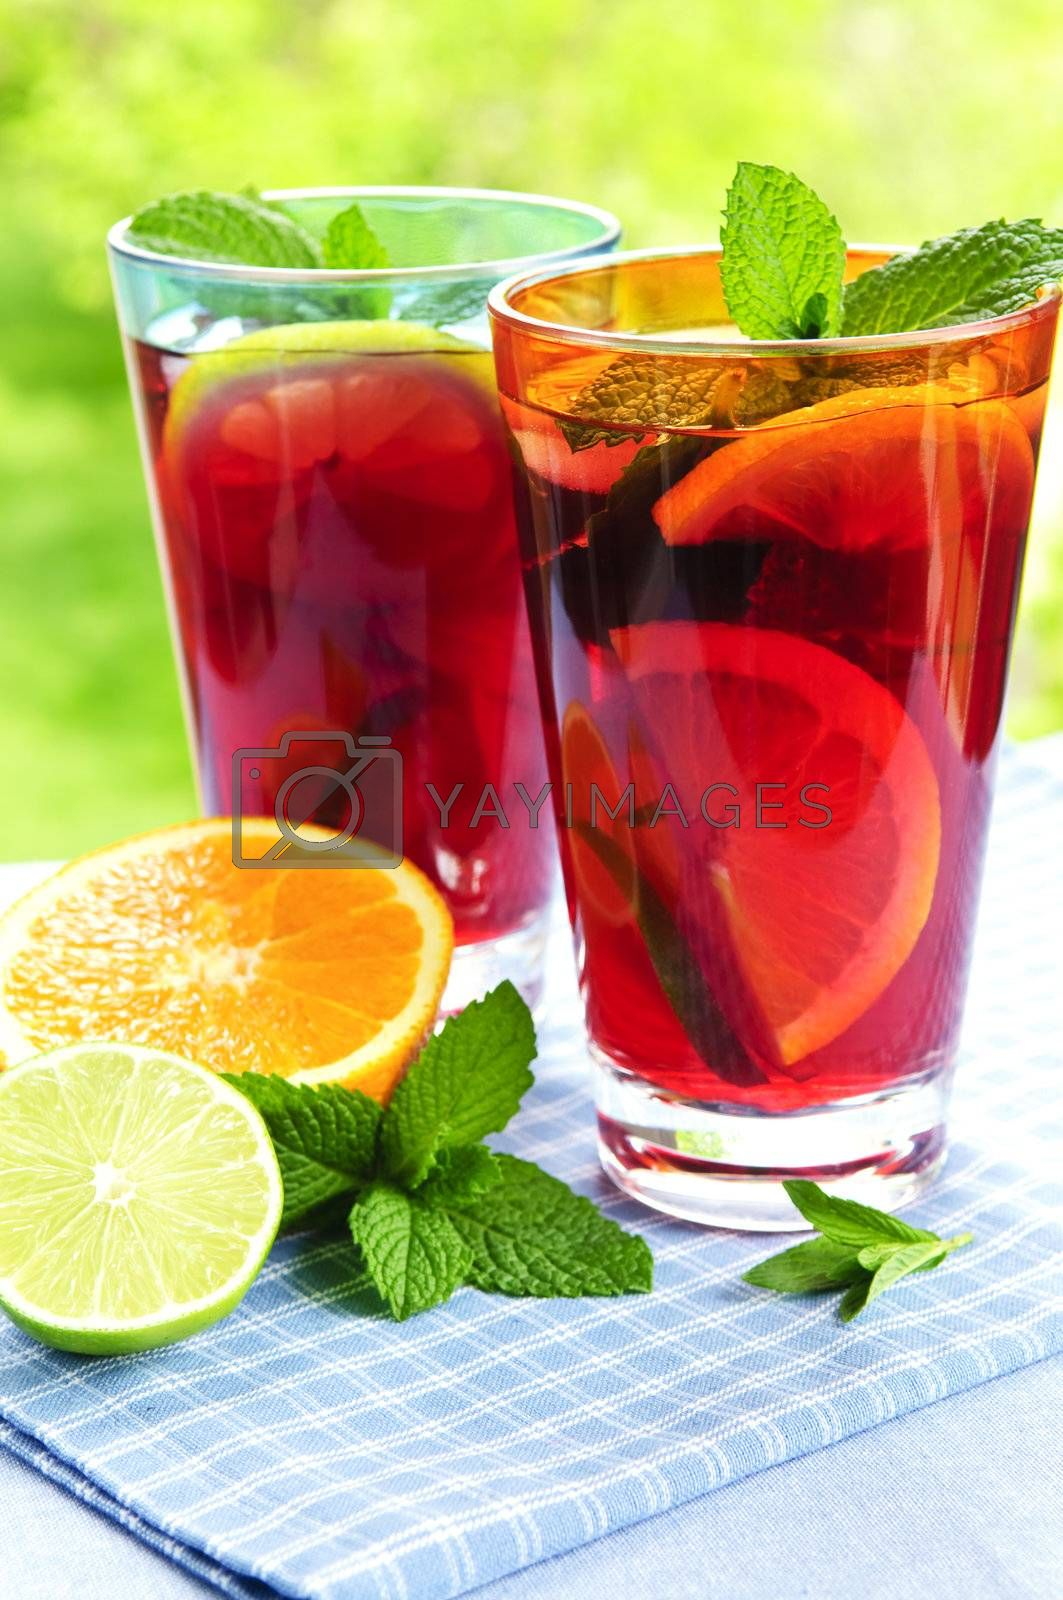 Royalty free image of Fruit punch in glasses by elenathewise